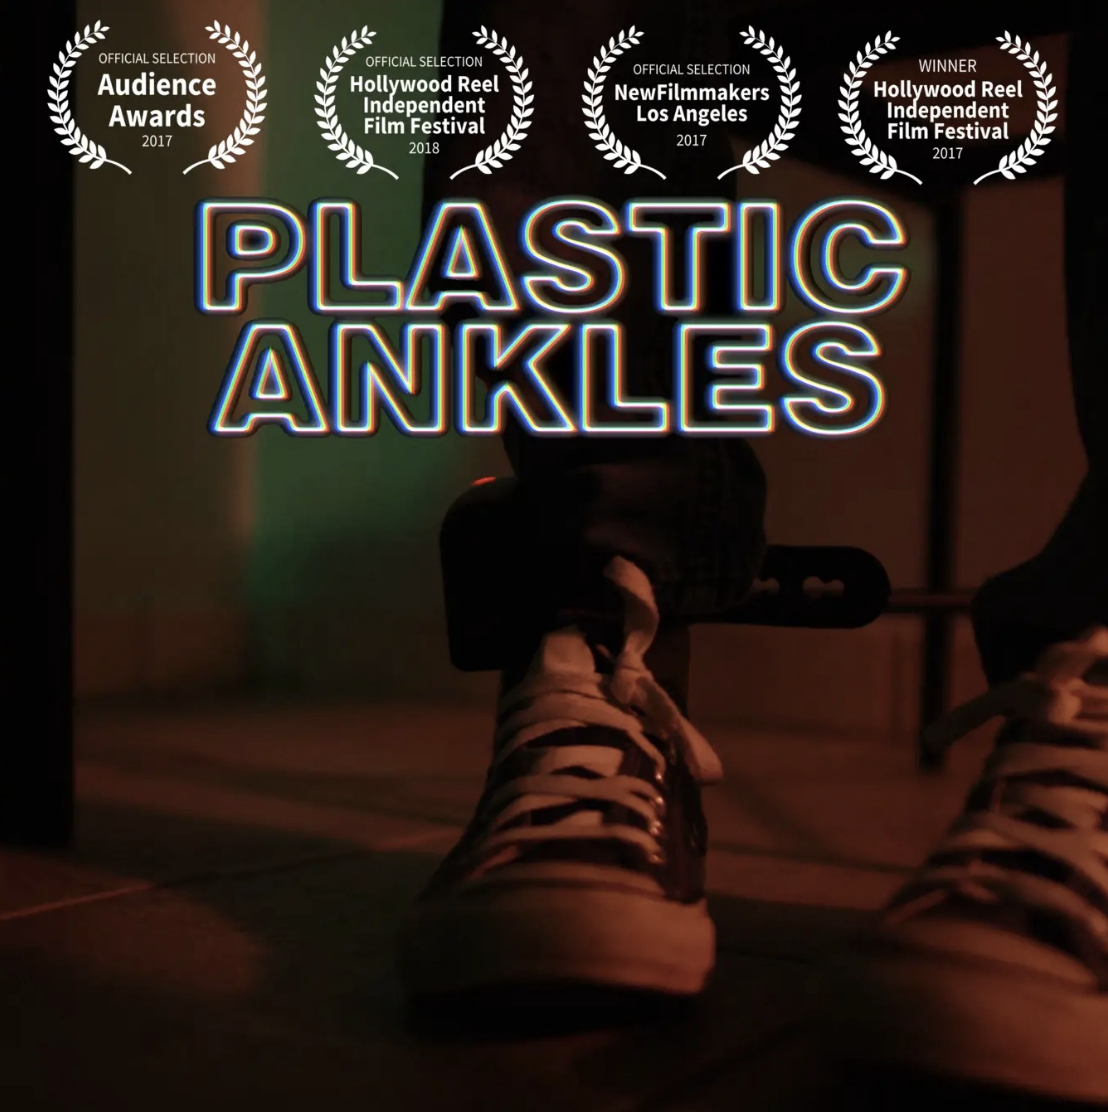 Plastic Ankles (2017) - 'Plastic Ankles' is the day in the life story of Marlon, an innocent man who is wrongfully found guilty for a crime he did not commit. He faces his introspective battles, unclear memories and imaginary friends who help his grasp his lonely situation.Watch on Vimeo ➝